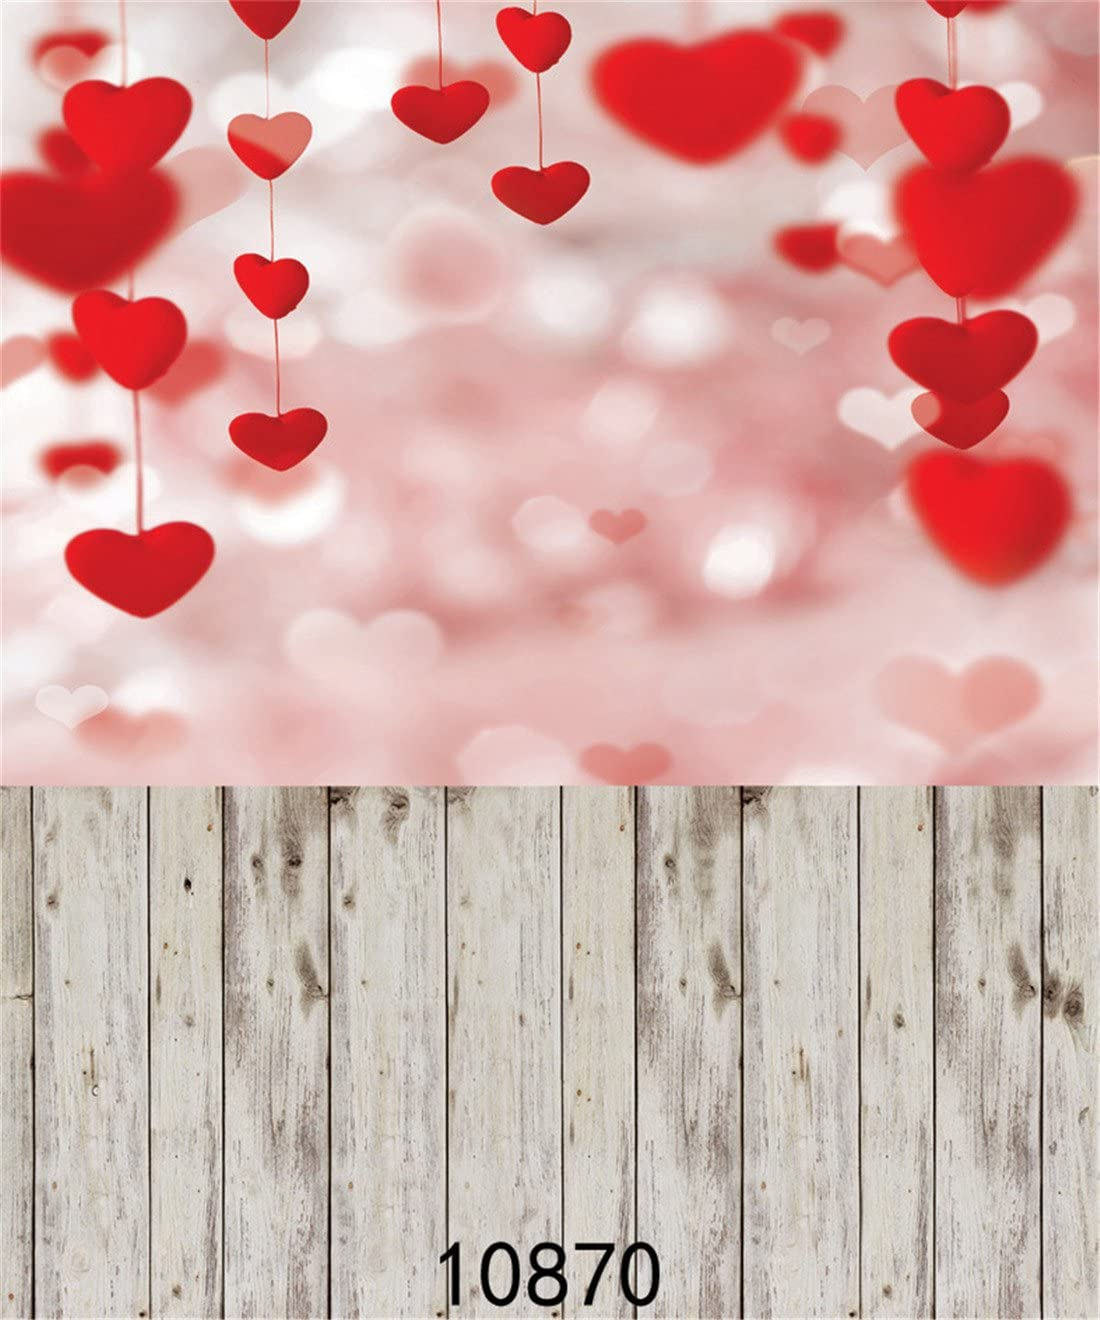 4X6FT-Red Heart Shape Pattern Photography Backdrop Wood Product Wedding Background for Photo Studio